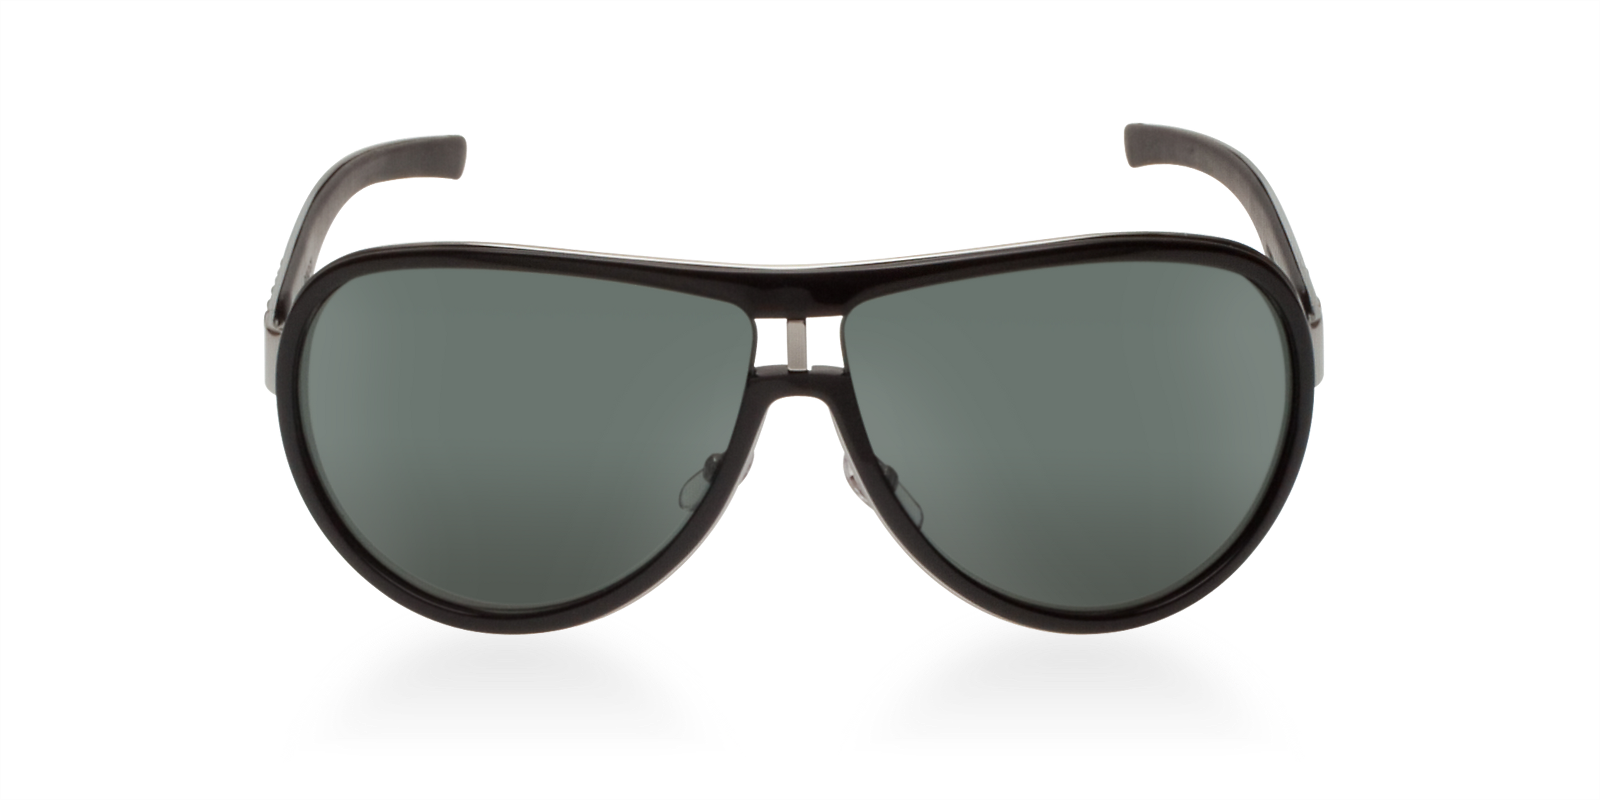 Sunglasses Download Free PNG